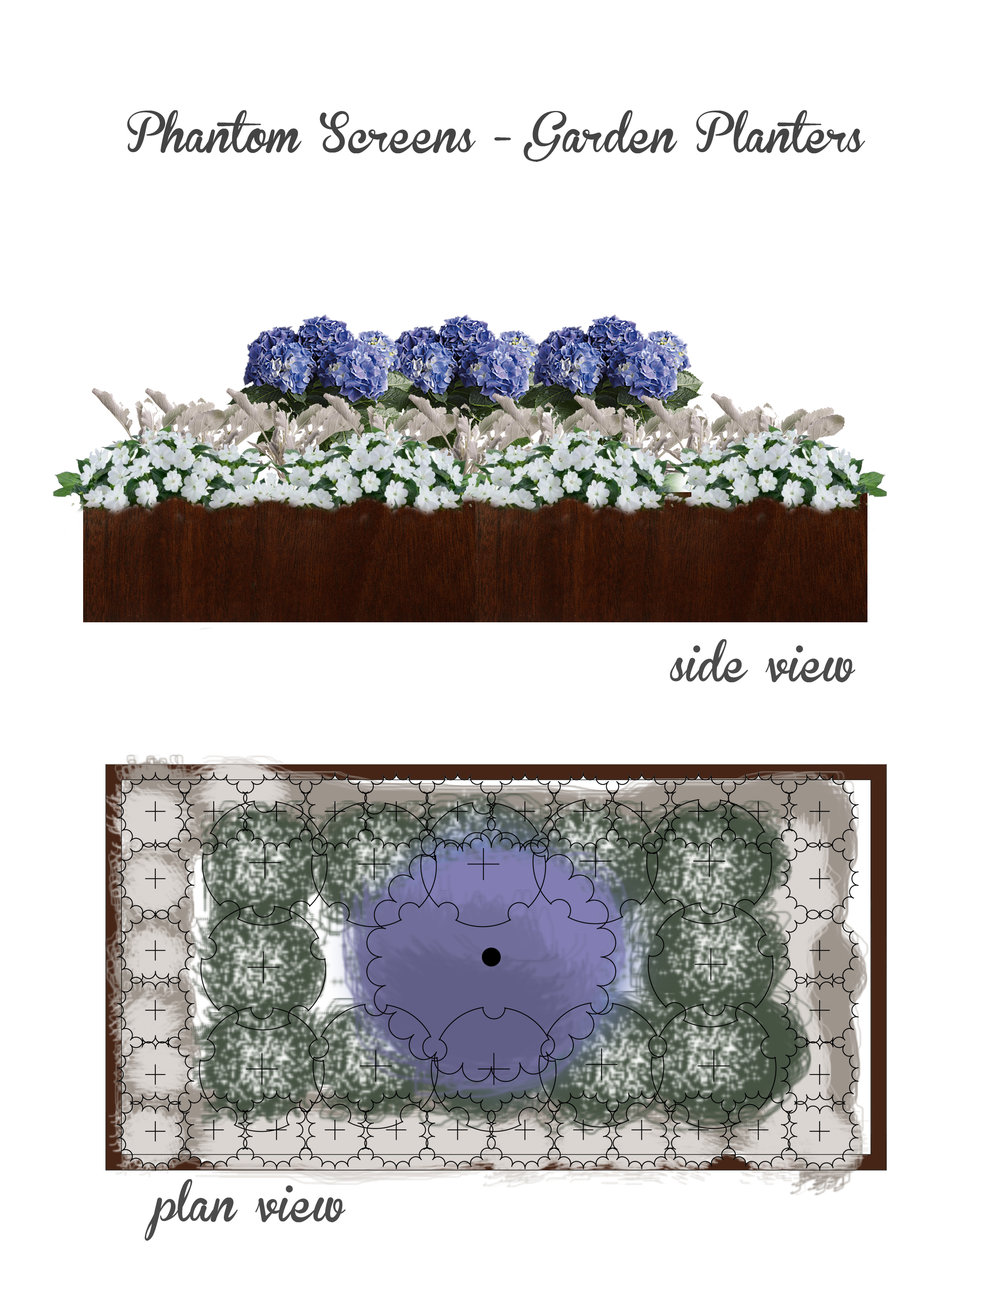 Digital design board for DeWolde Residence raised planters. Hydrangea (center) surrounded by white impatiens and Dichondra 'Silver Falls' spilling over the edges.